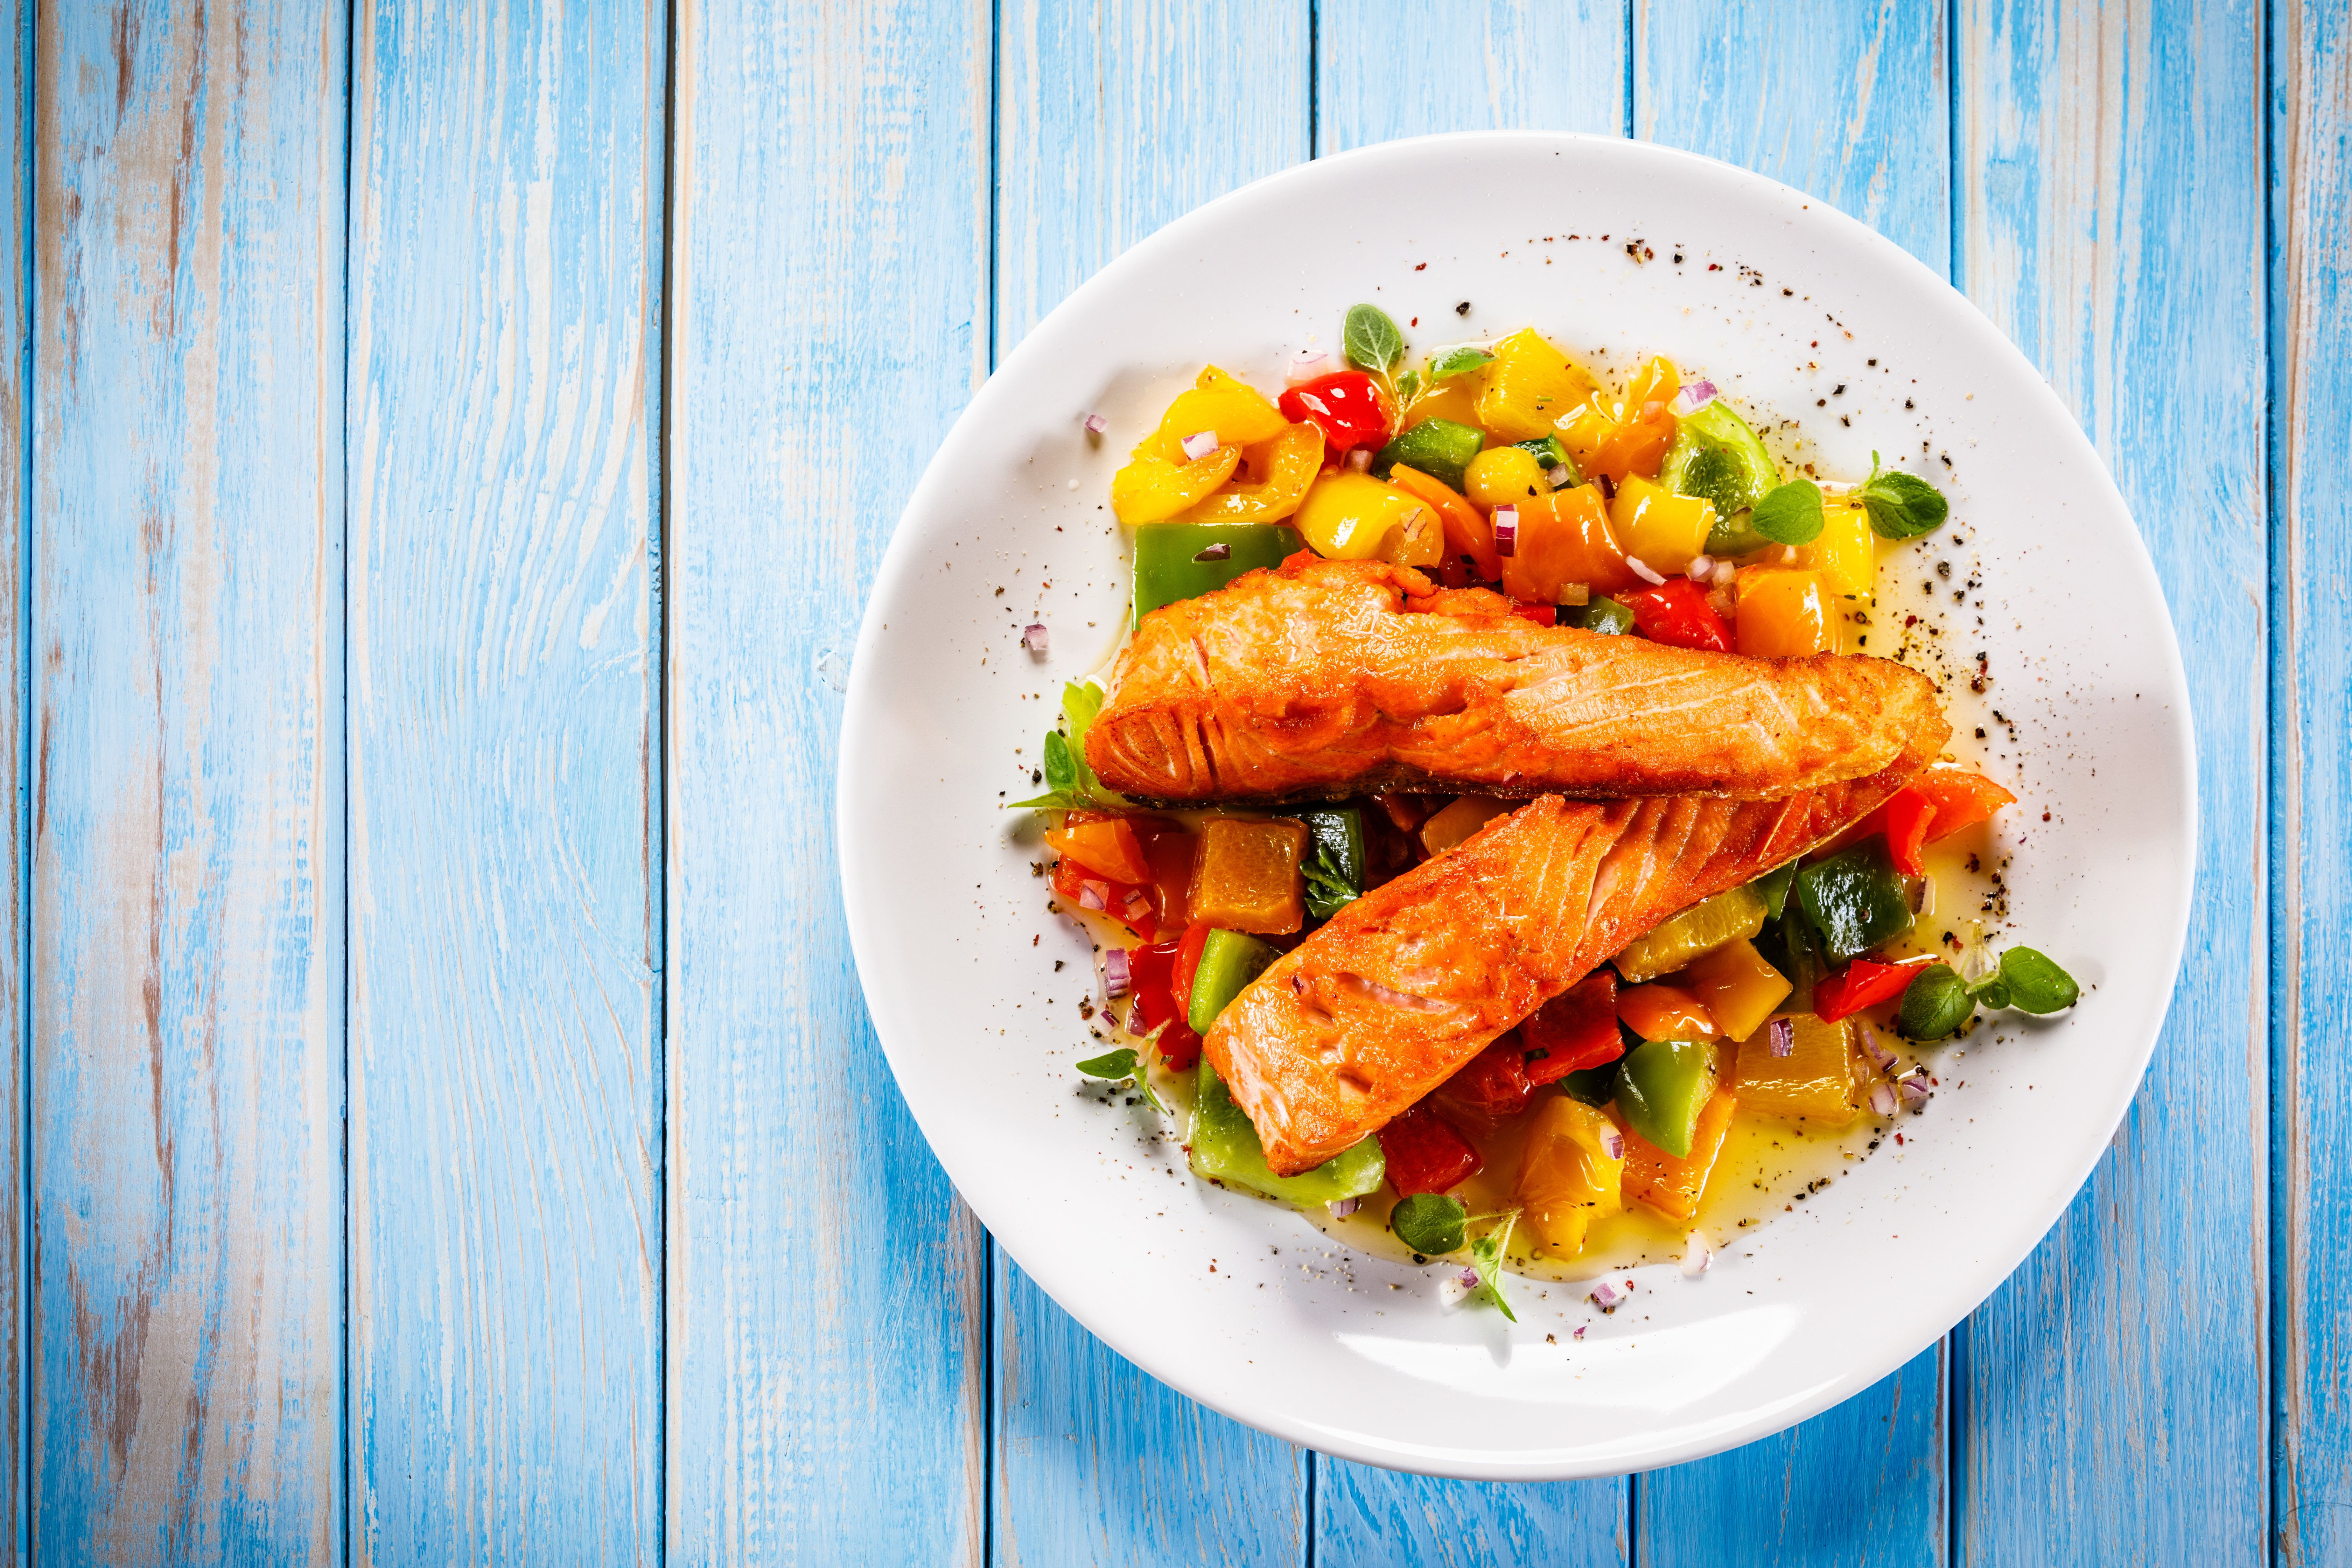 Diet Rich In Fatty Fish Could Reduce Asthma Symptoms In Children, Study Suggests